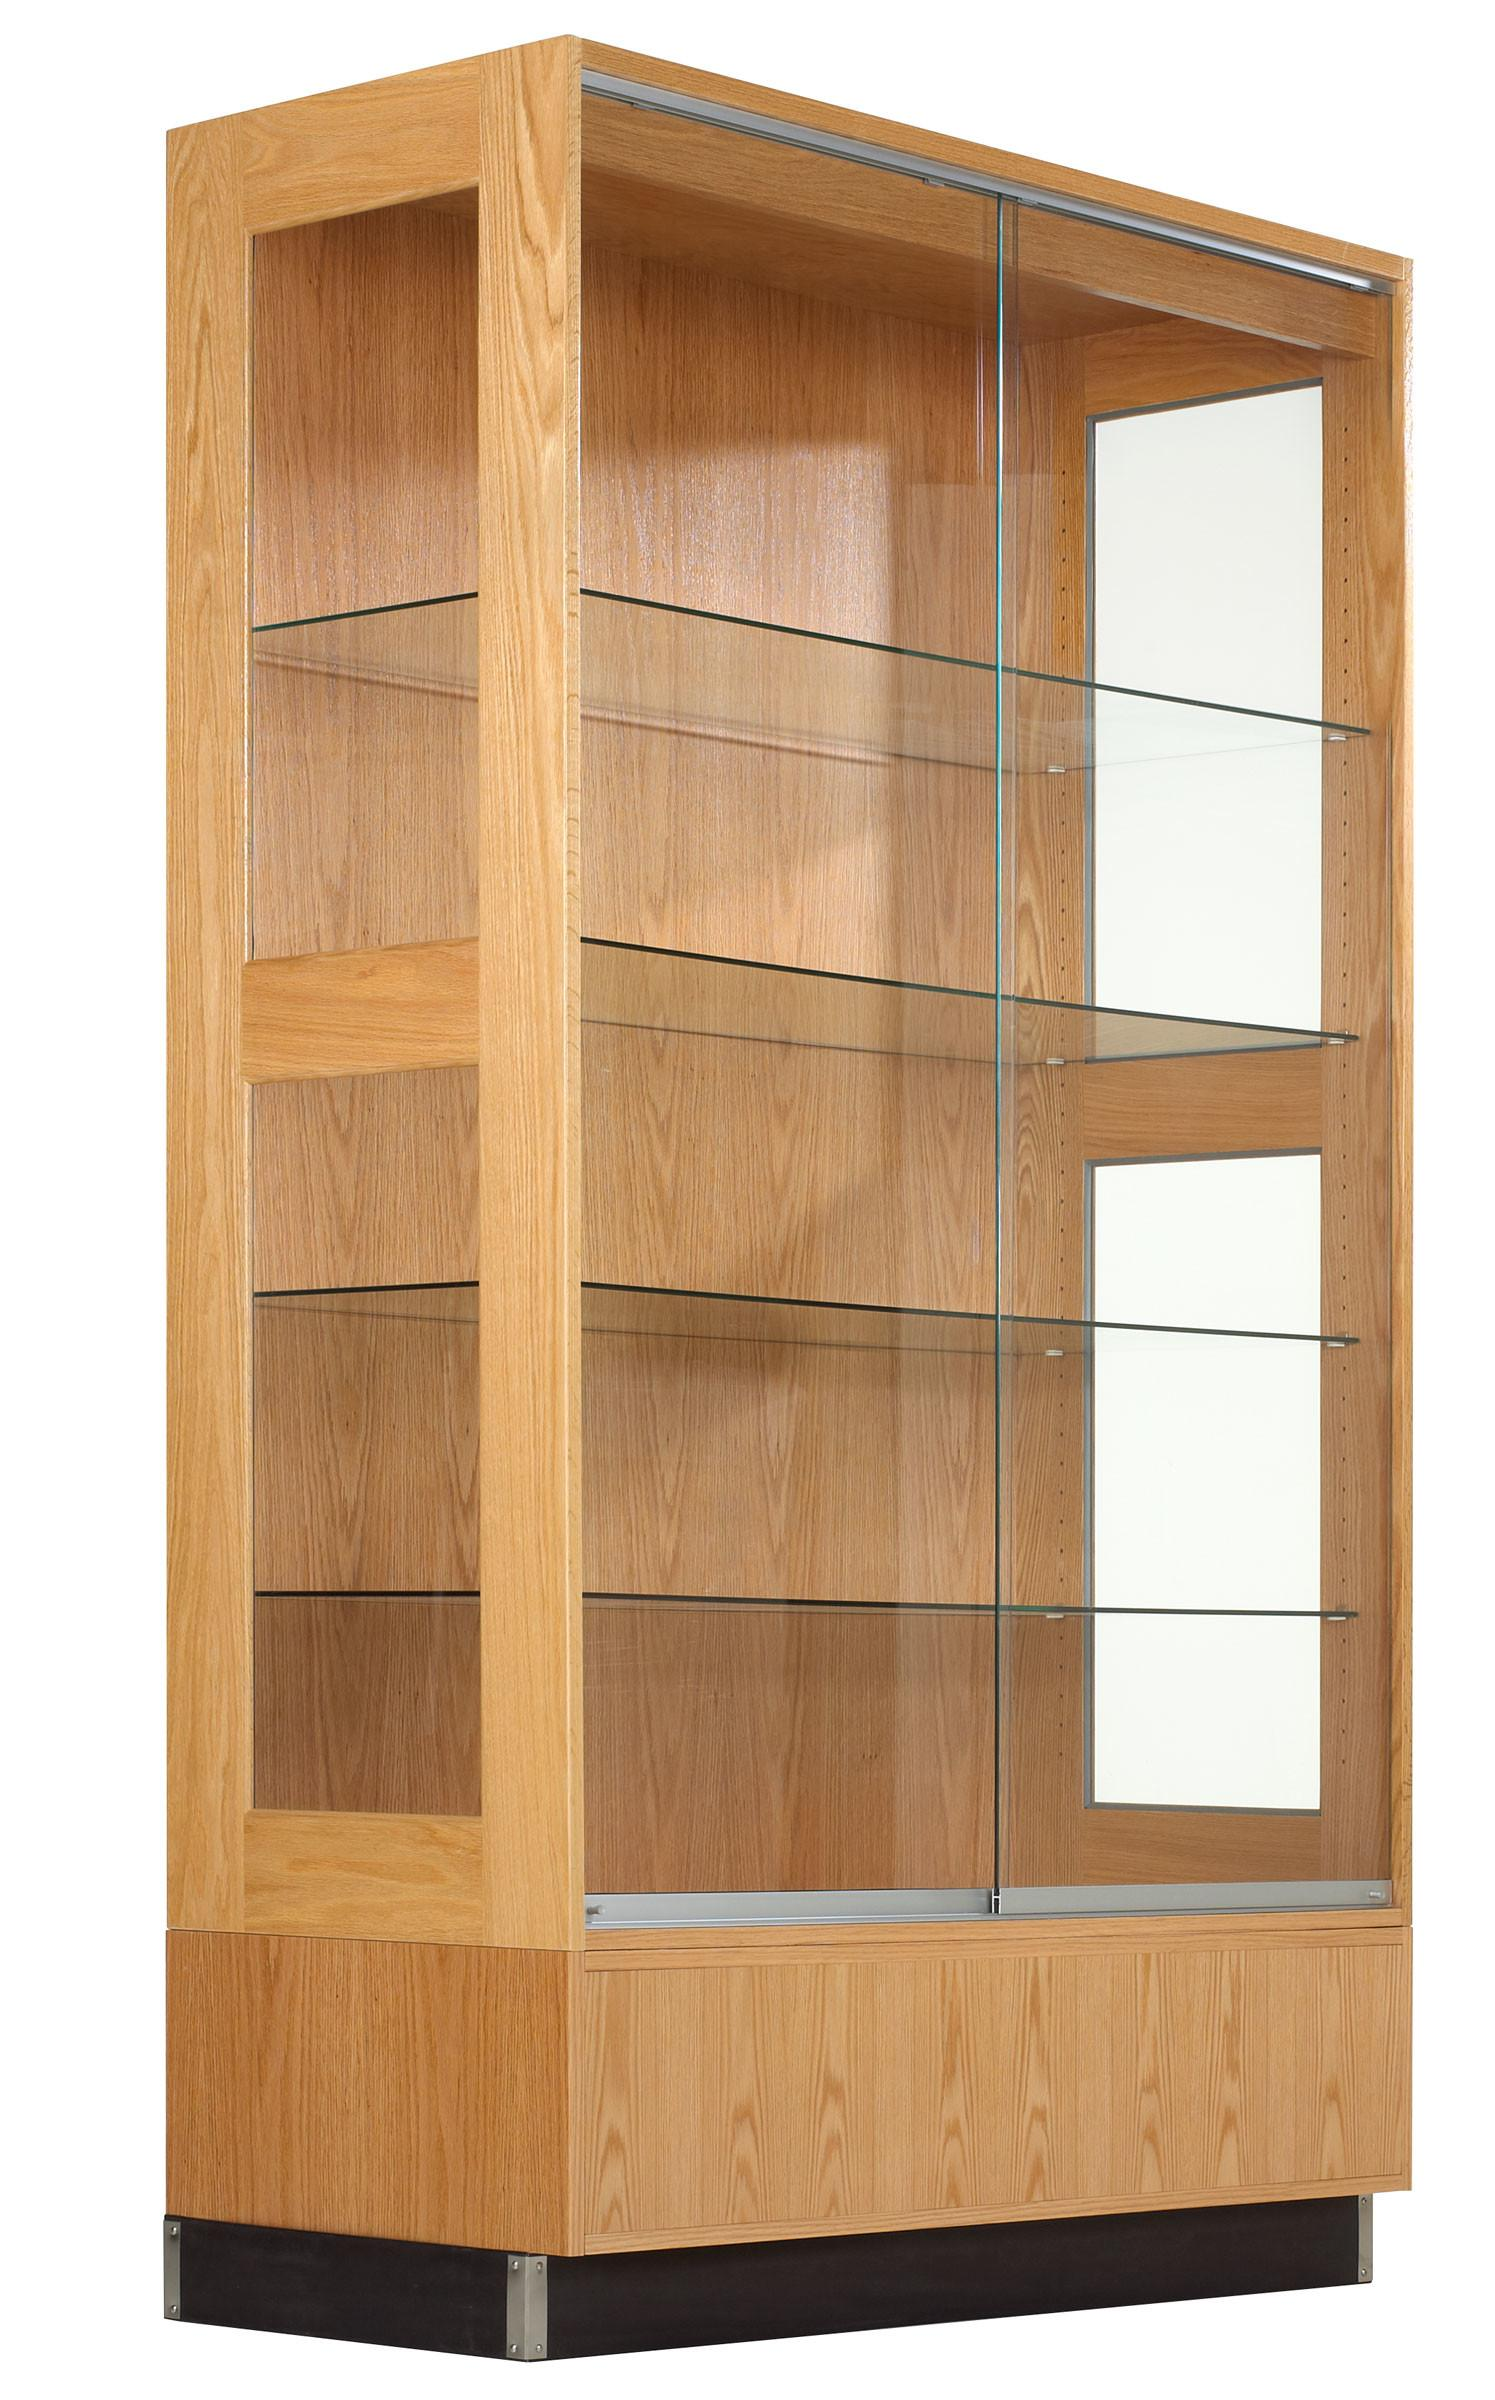 Contemporary Wall Display Cabinet Feature Clear Glass